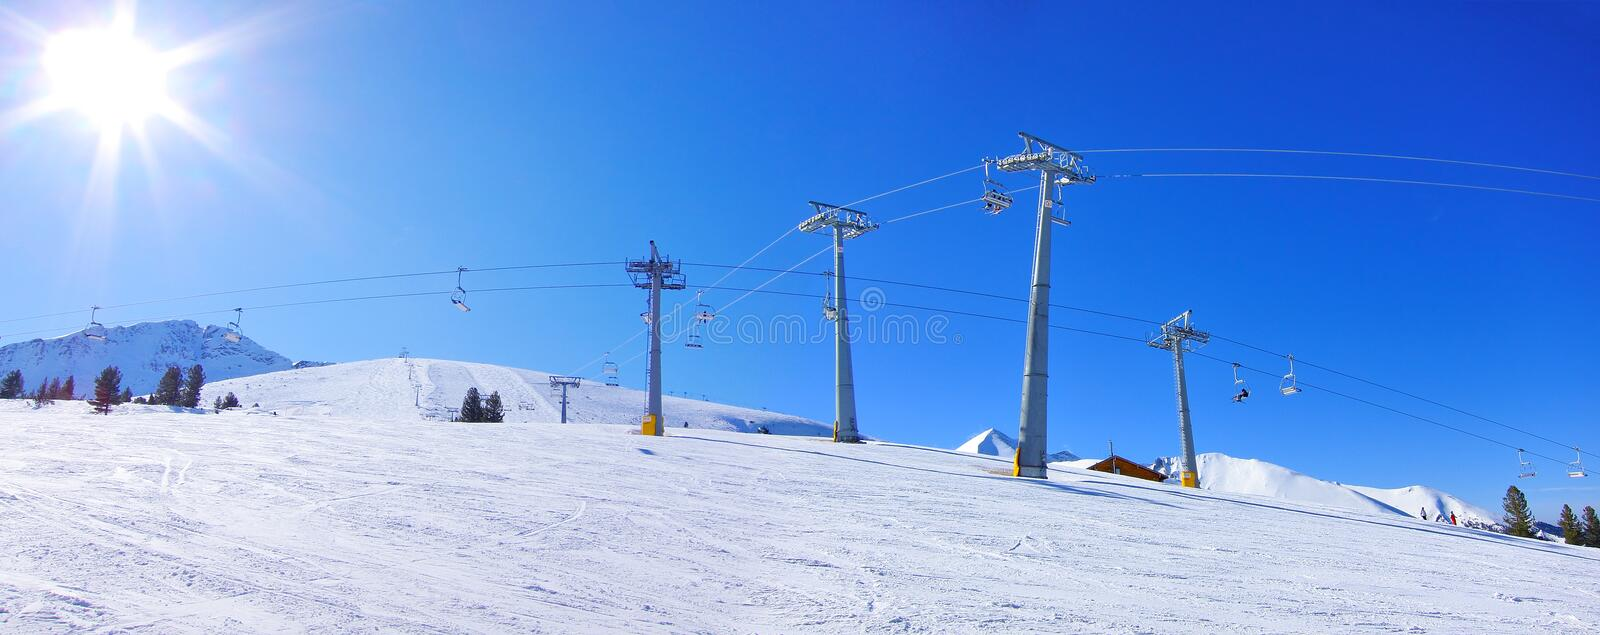 Download Ski Resort stock photo. Image of aerial, adventure, chairlift - 23922394